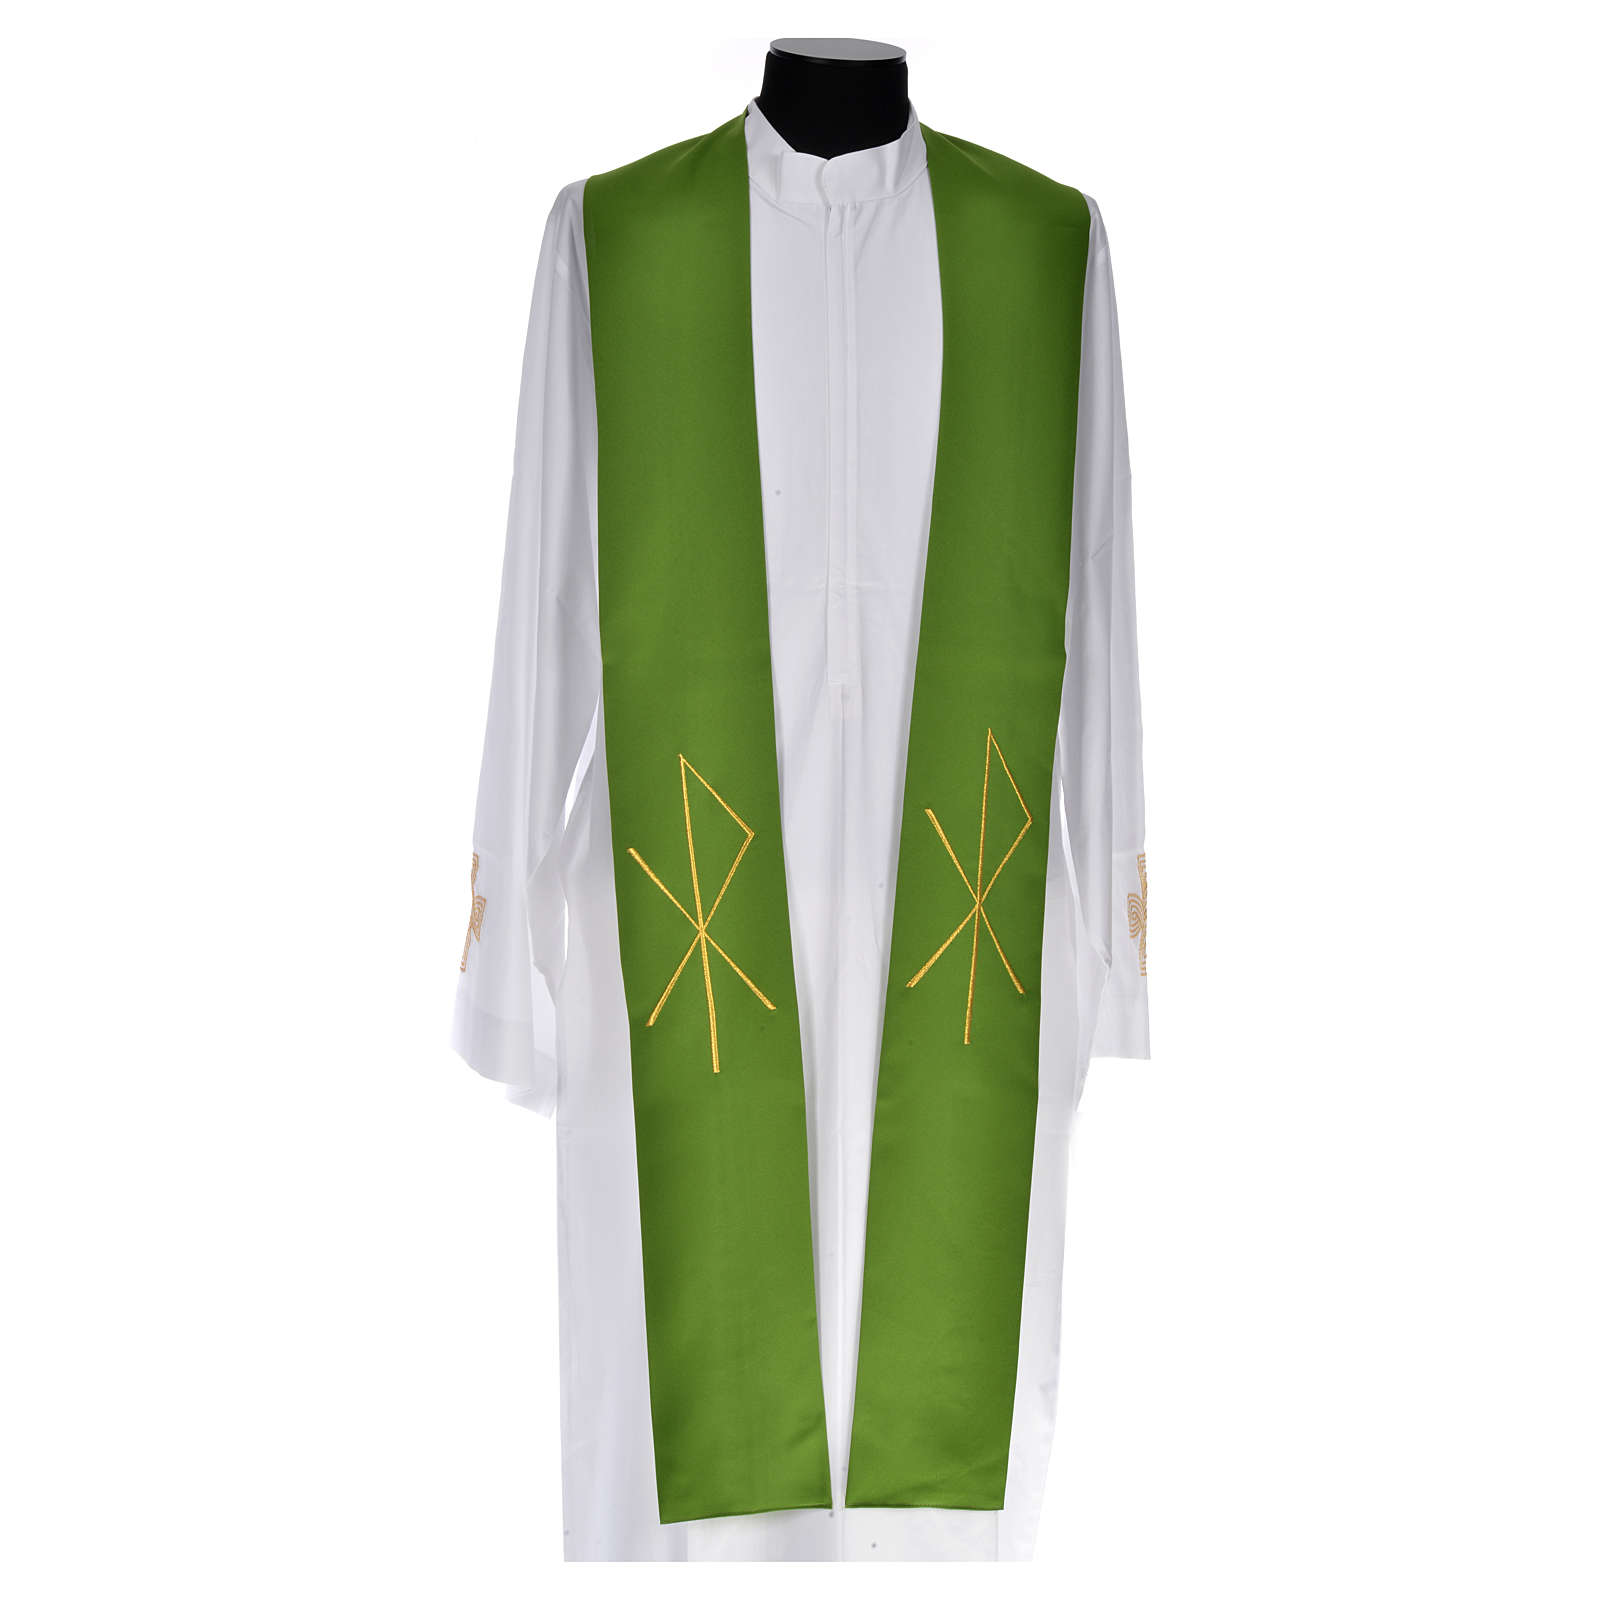 Stole in 100% polyester with stylised Chi-rho 4